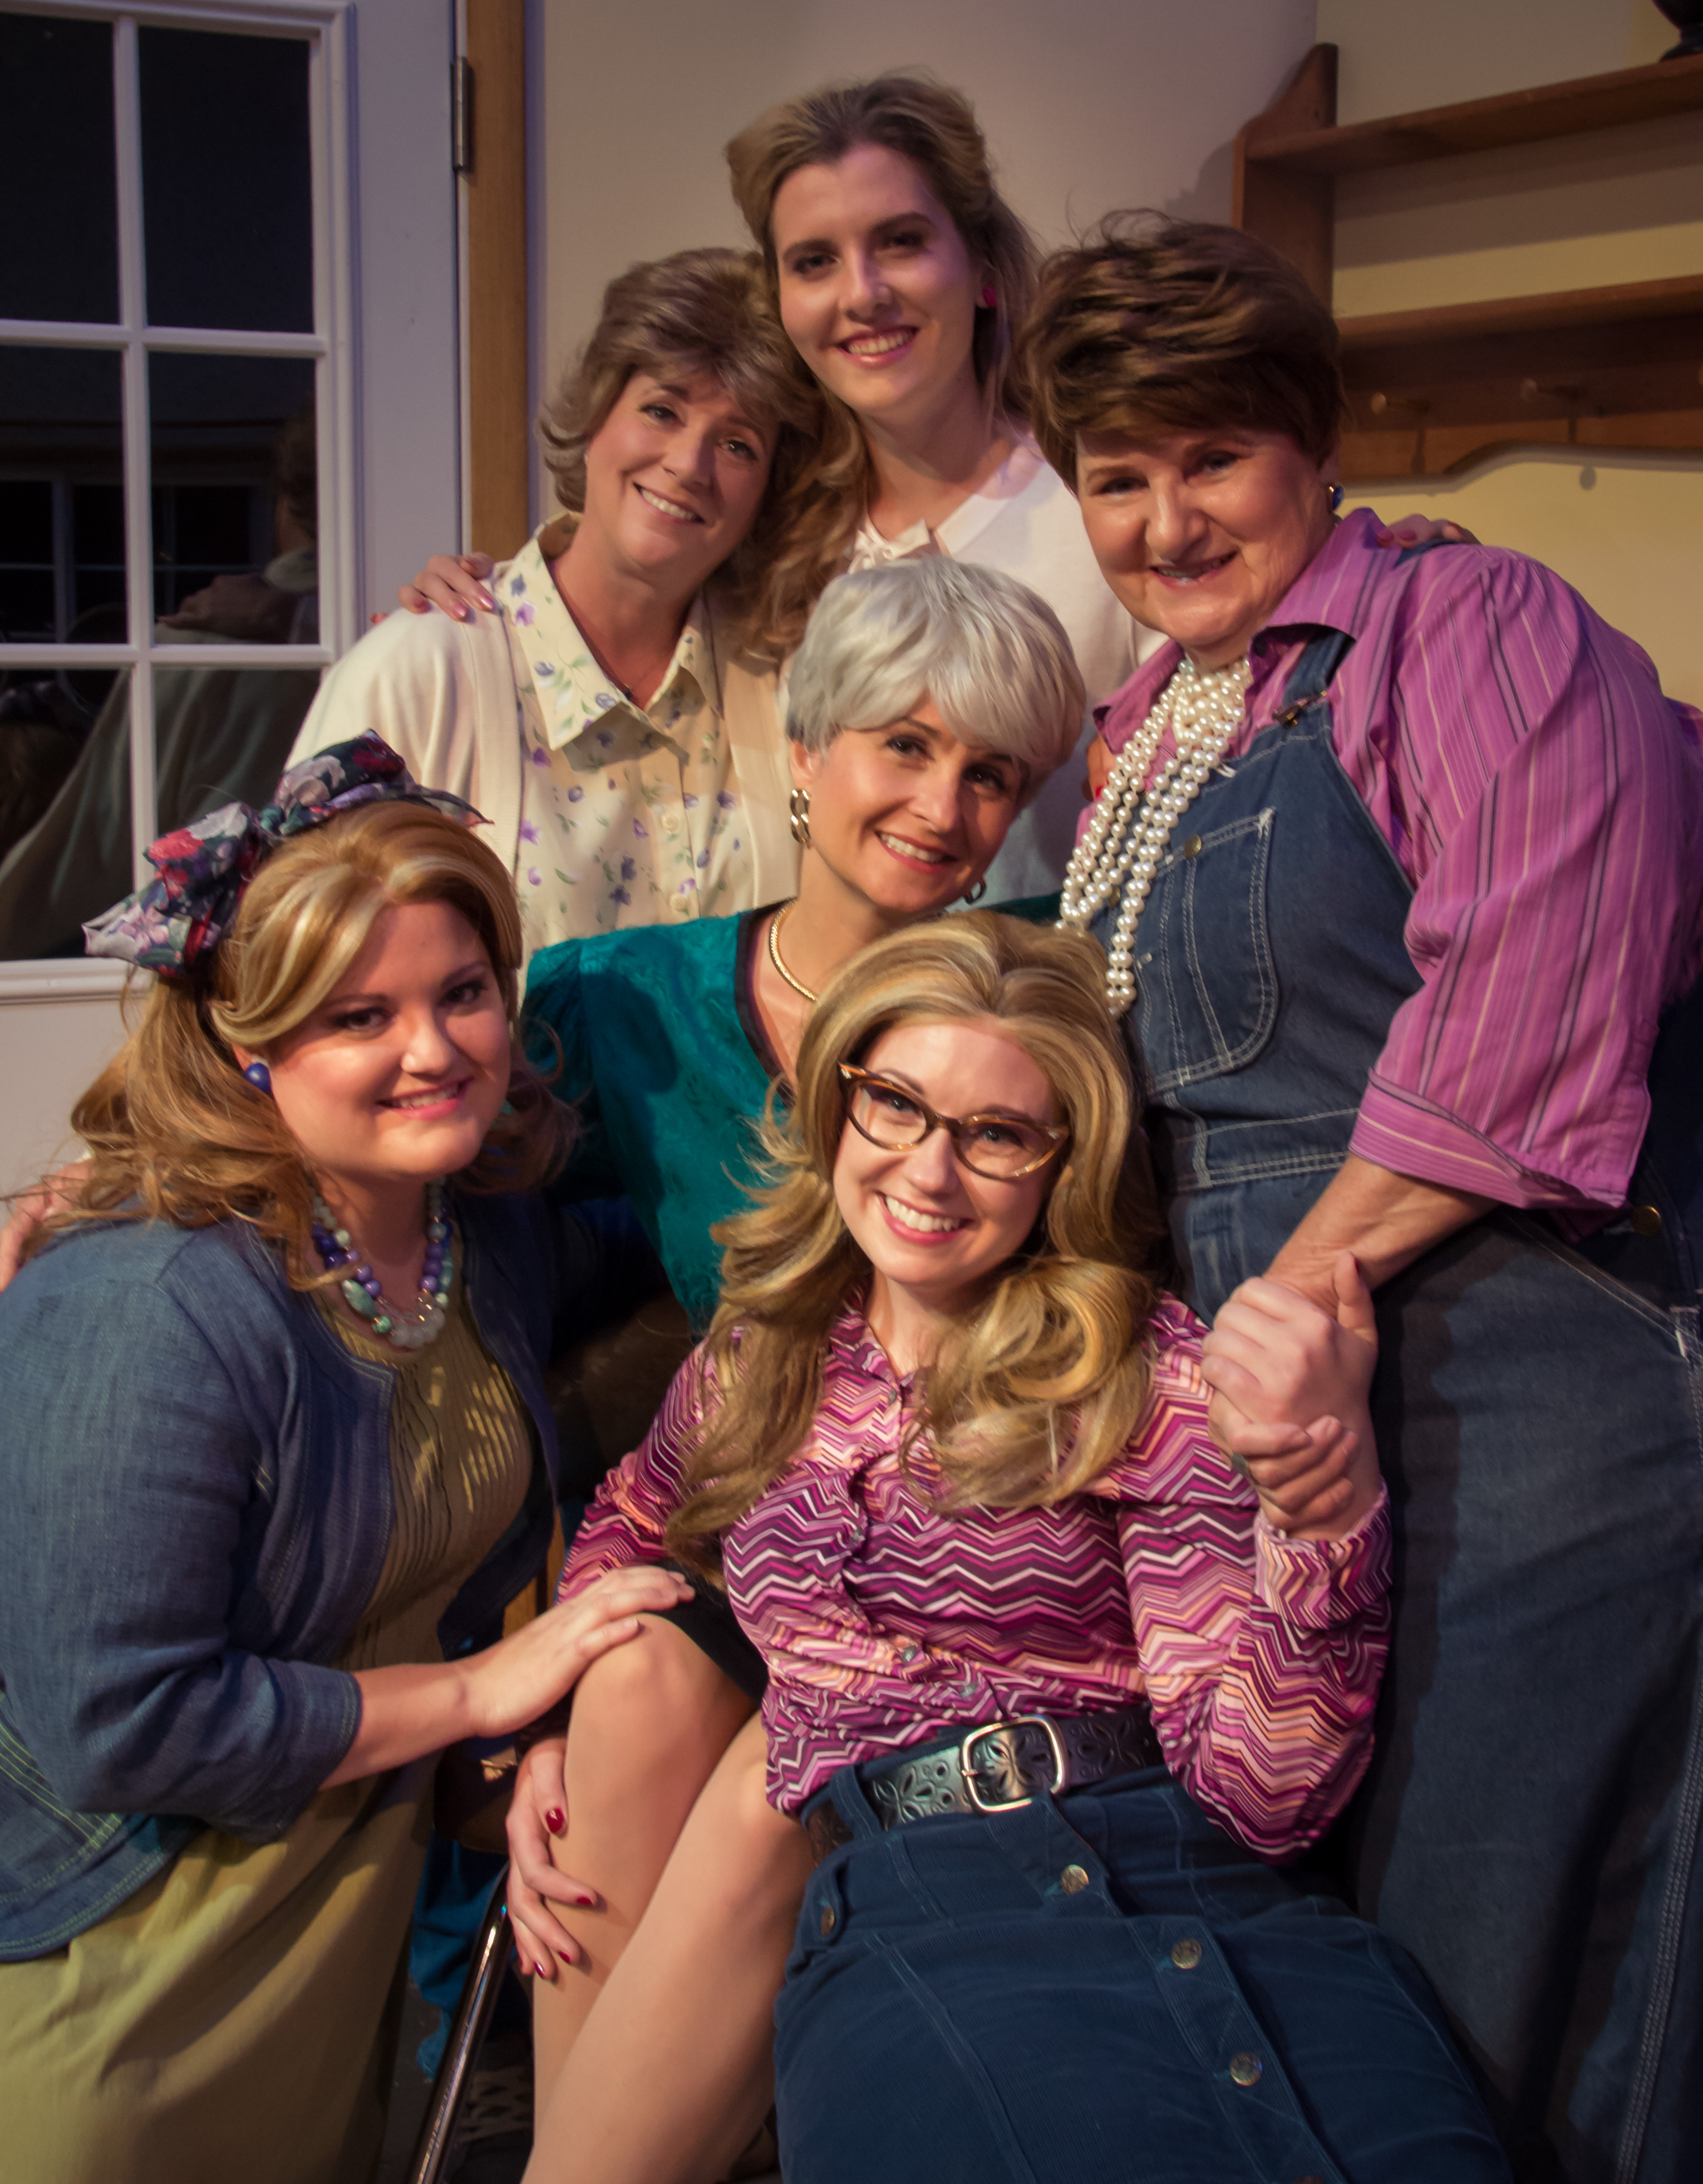 Laugh And Love Along With The Ladies Of Avon Players In Steel